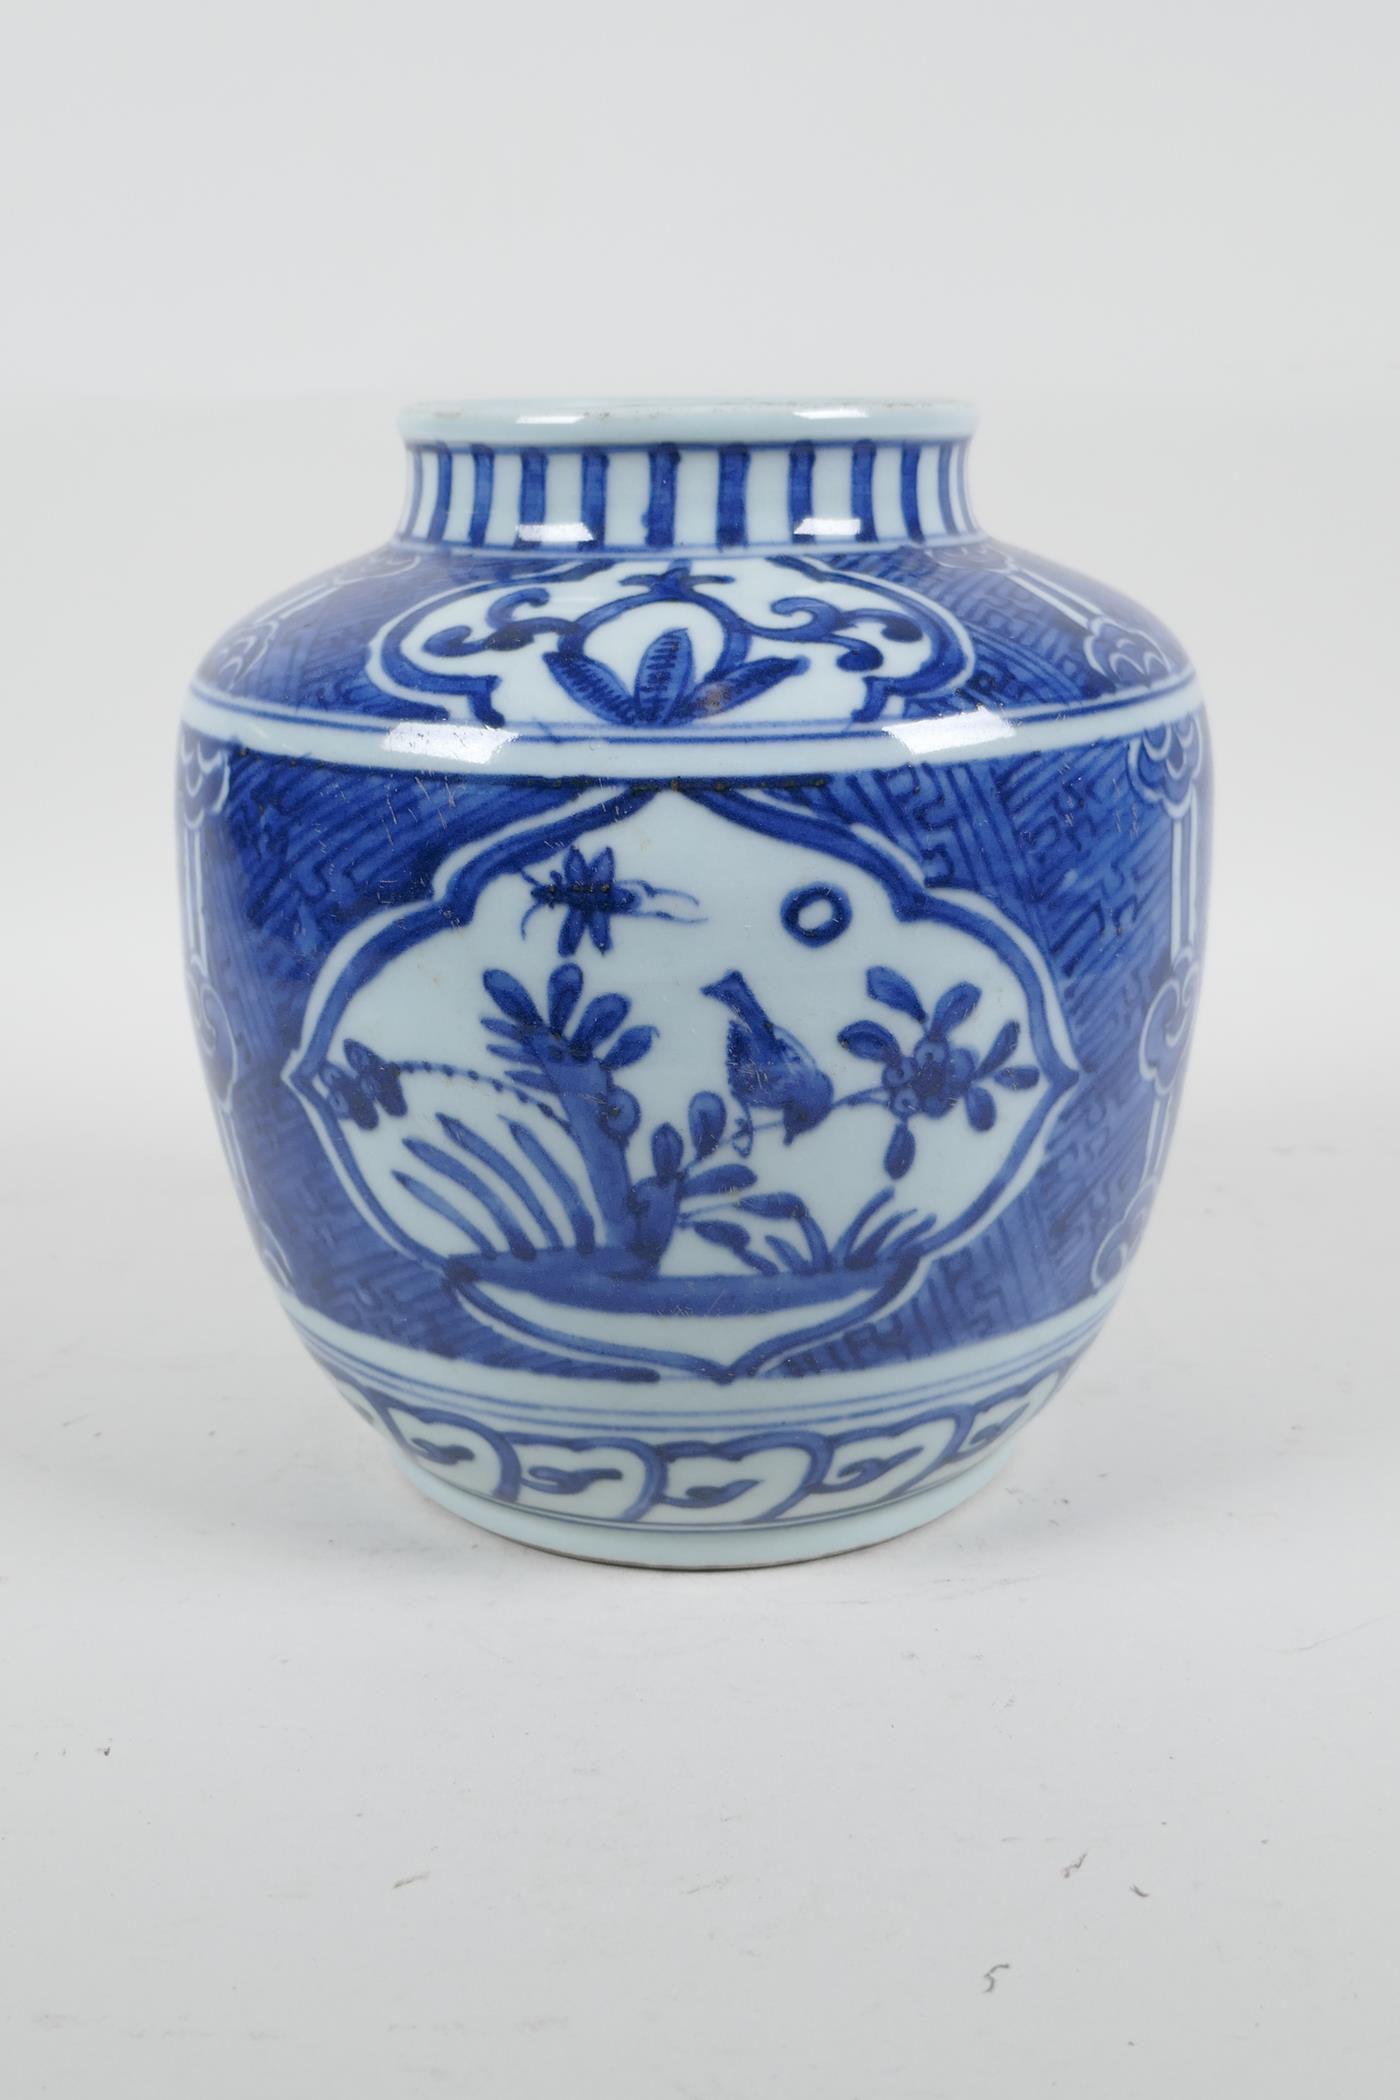 """A Chinese blue and white porcelain pot, with decorative panels depicting birds and flowers, 6½"""" high - Image 3 of 4"""